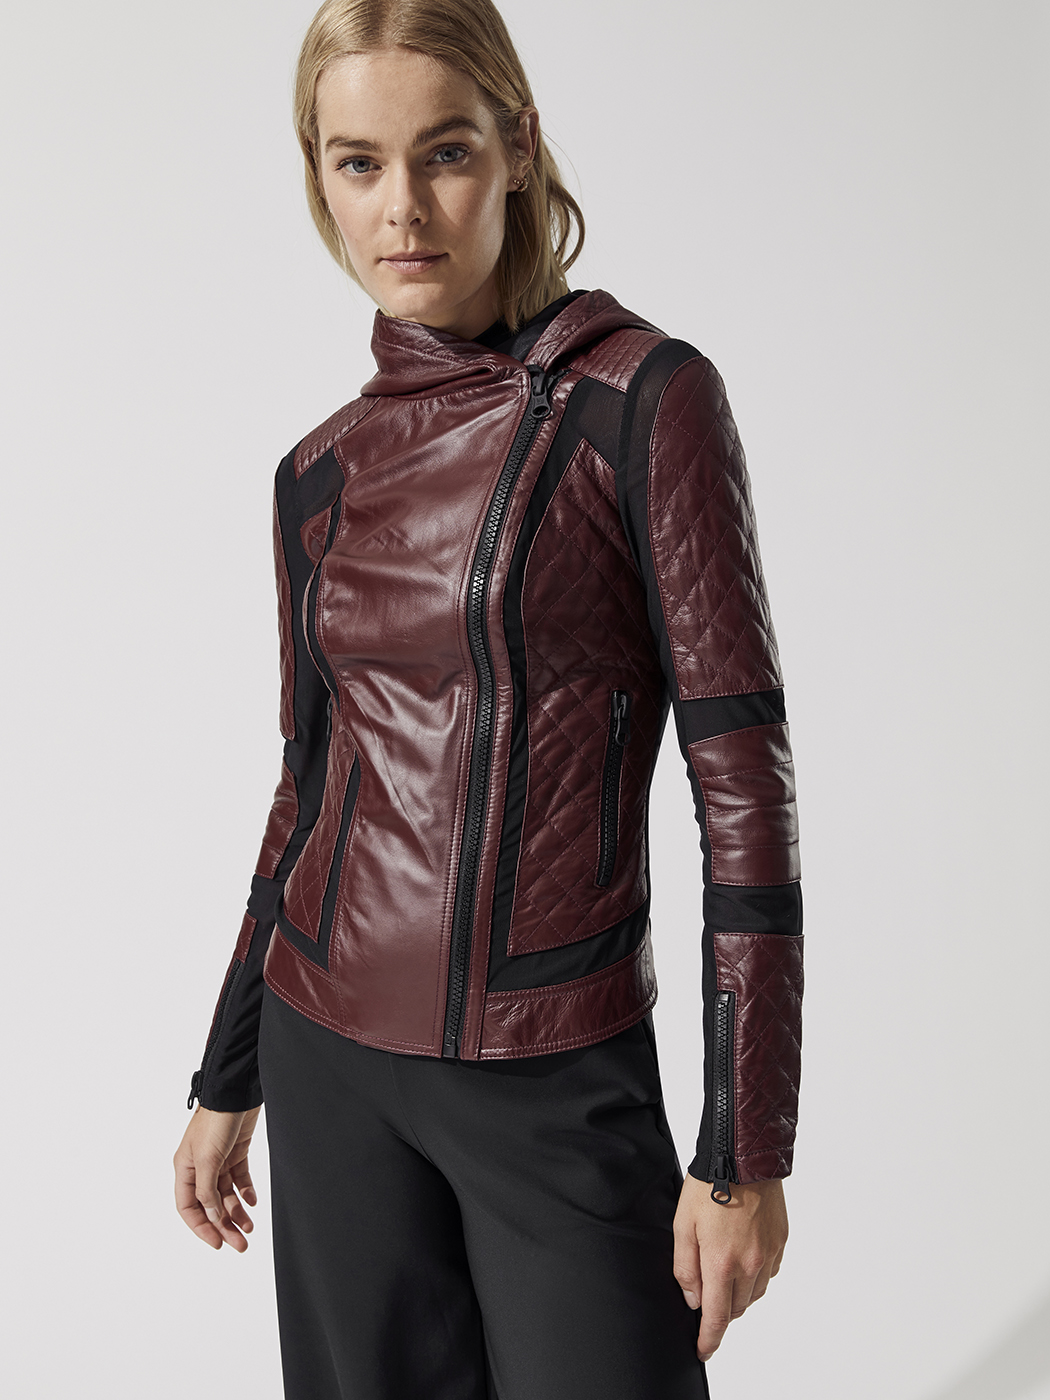 Voyage Hooded Moto Jacket in Envie Active wear for women